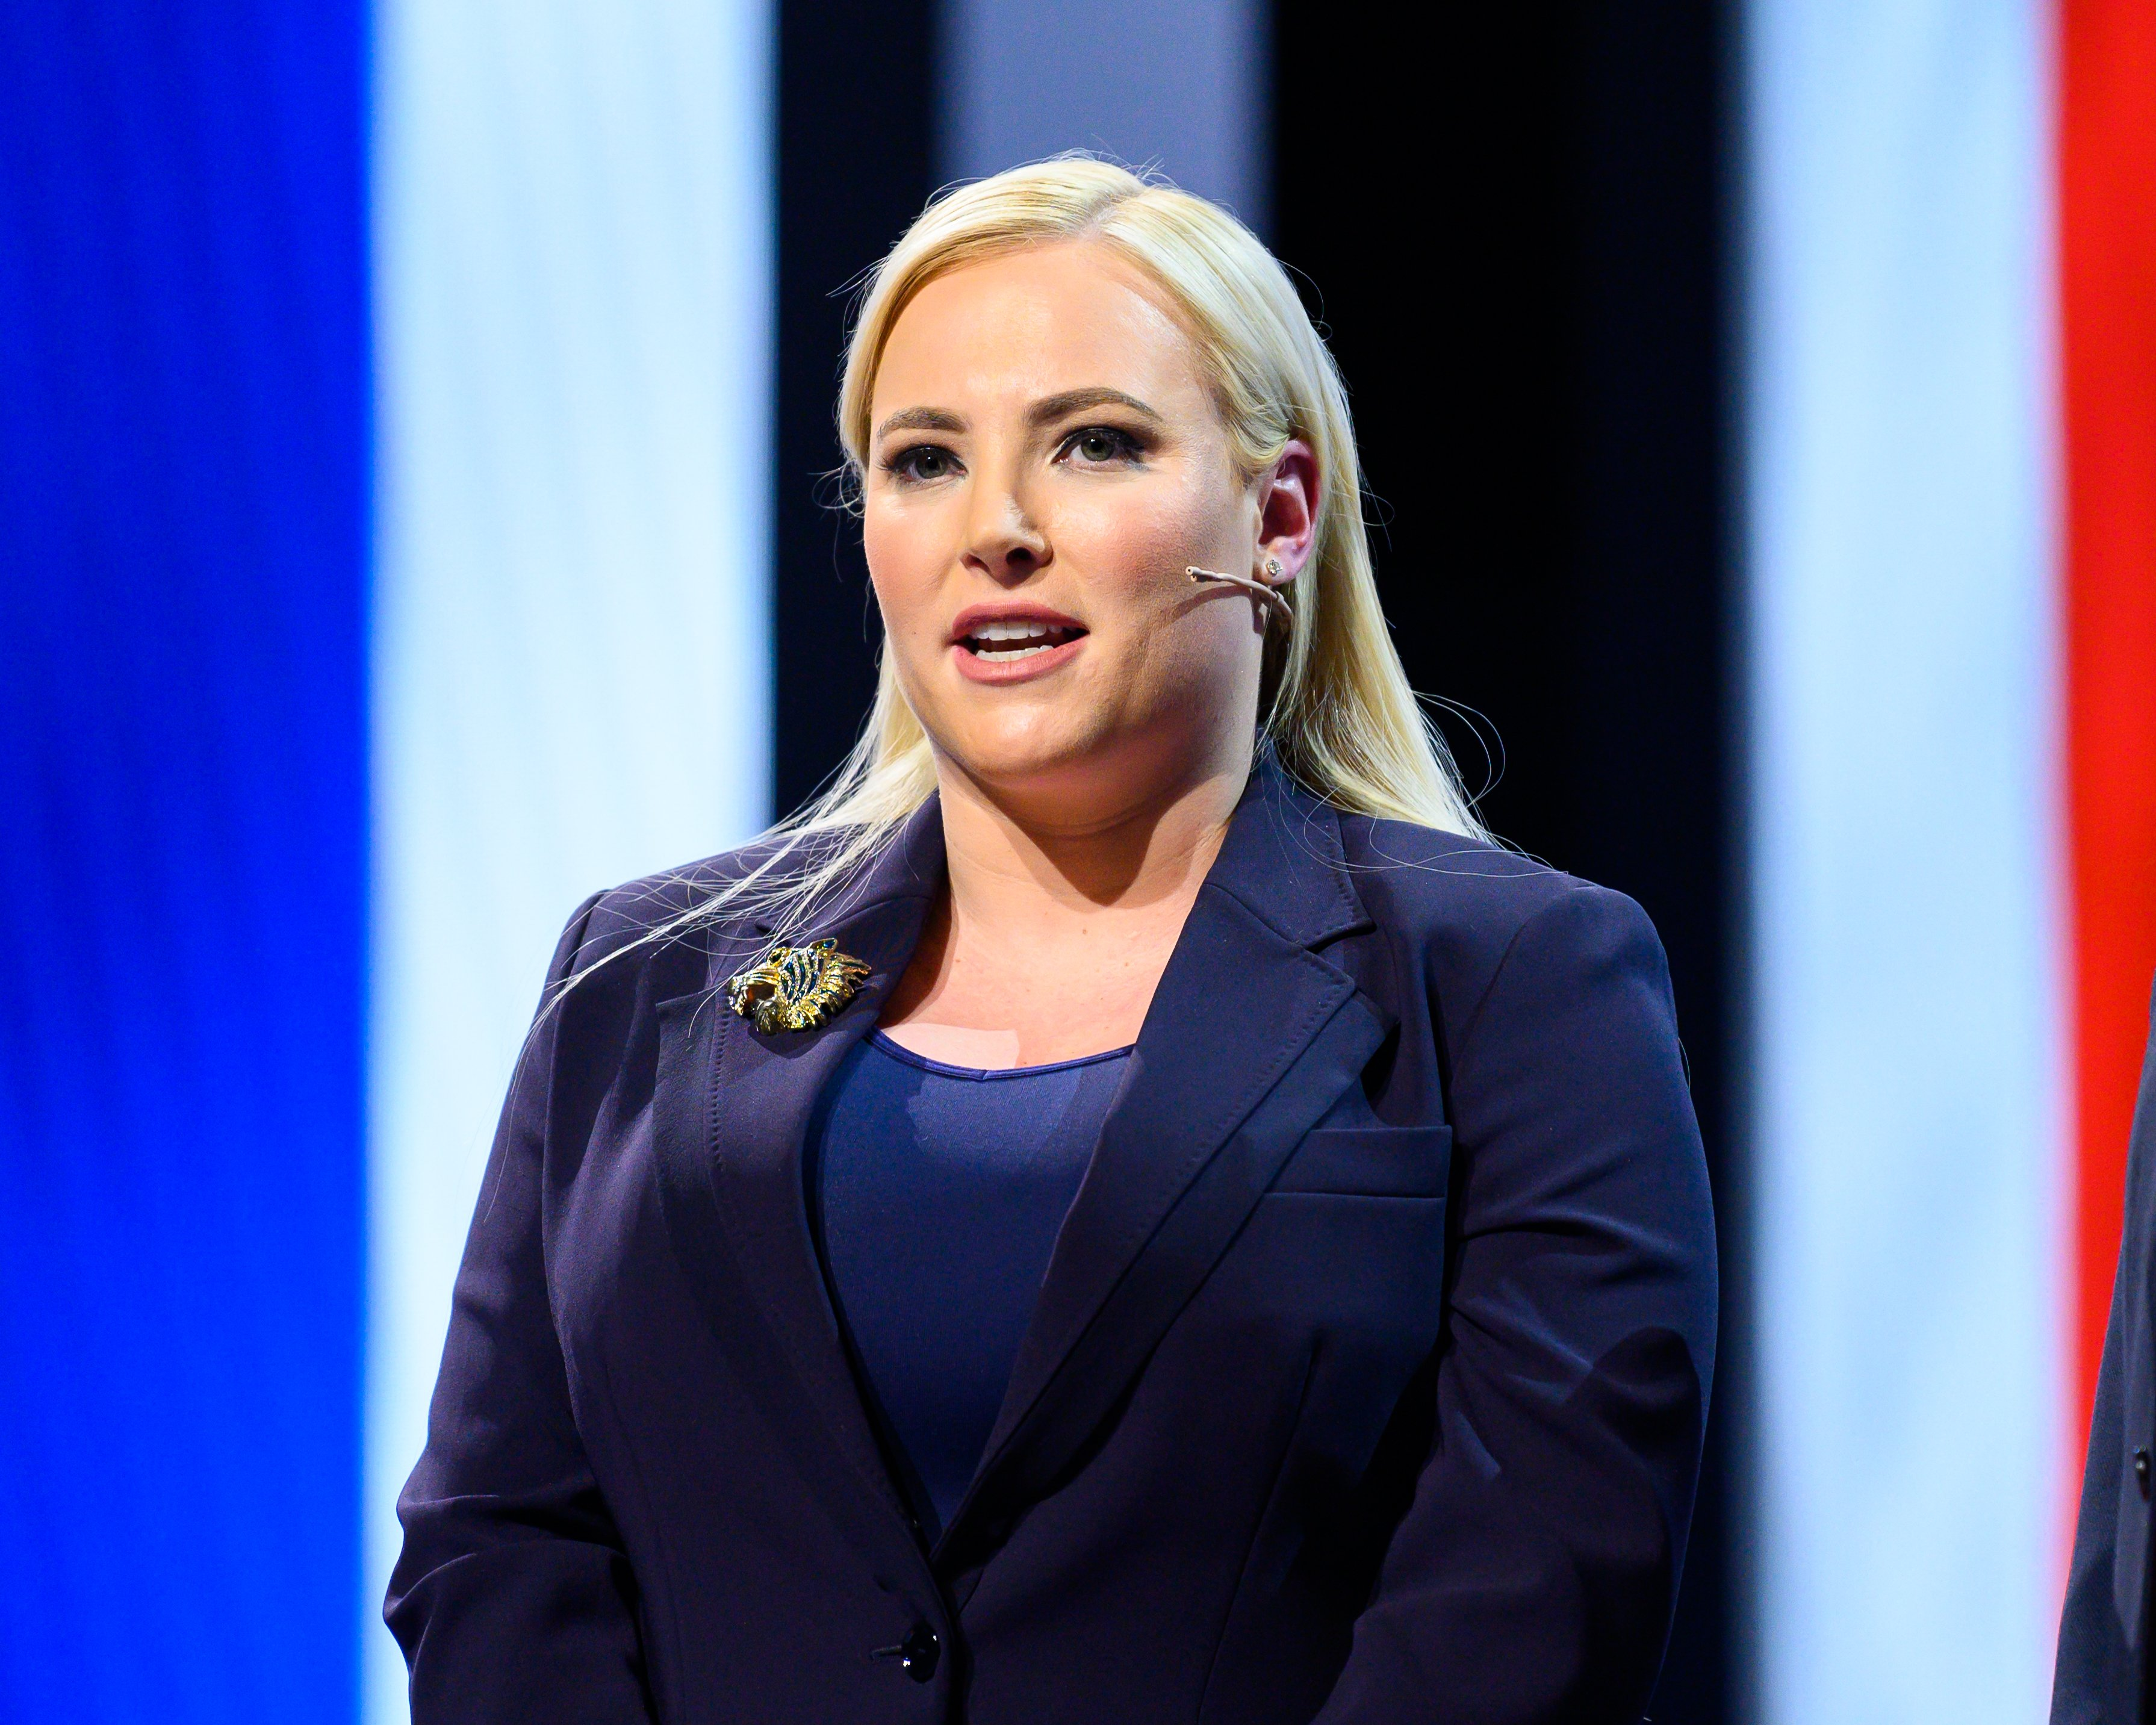 Meghan McCain during the American Israel Public Affairs Committee Policy Conference in Washington, DC on March 03, 2019    Photo: Getty Images